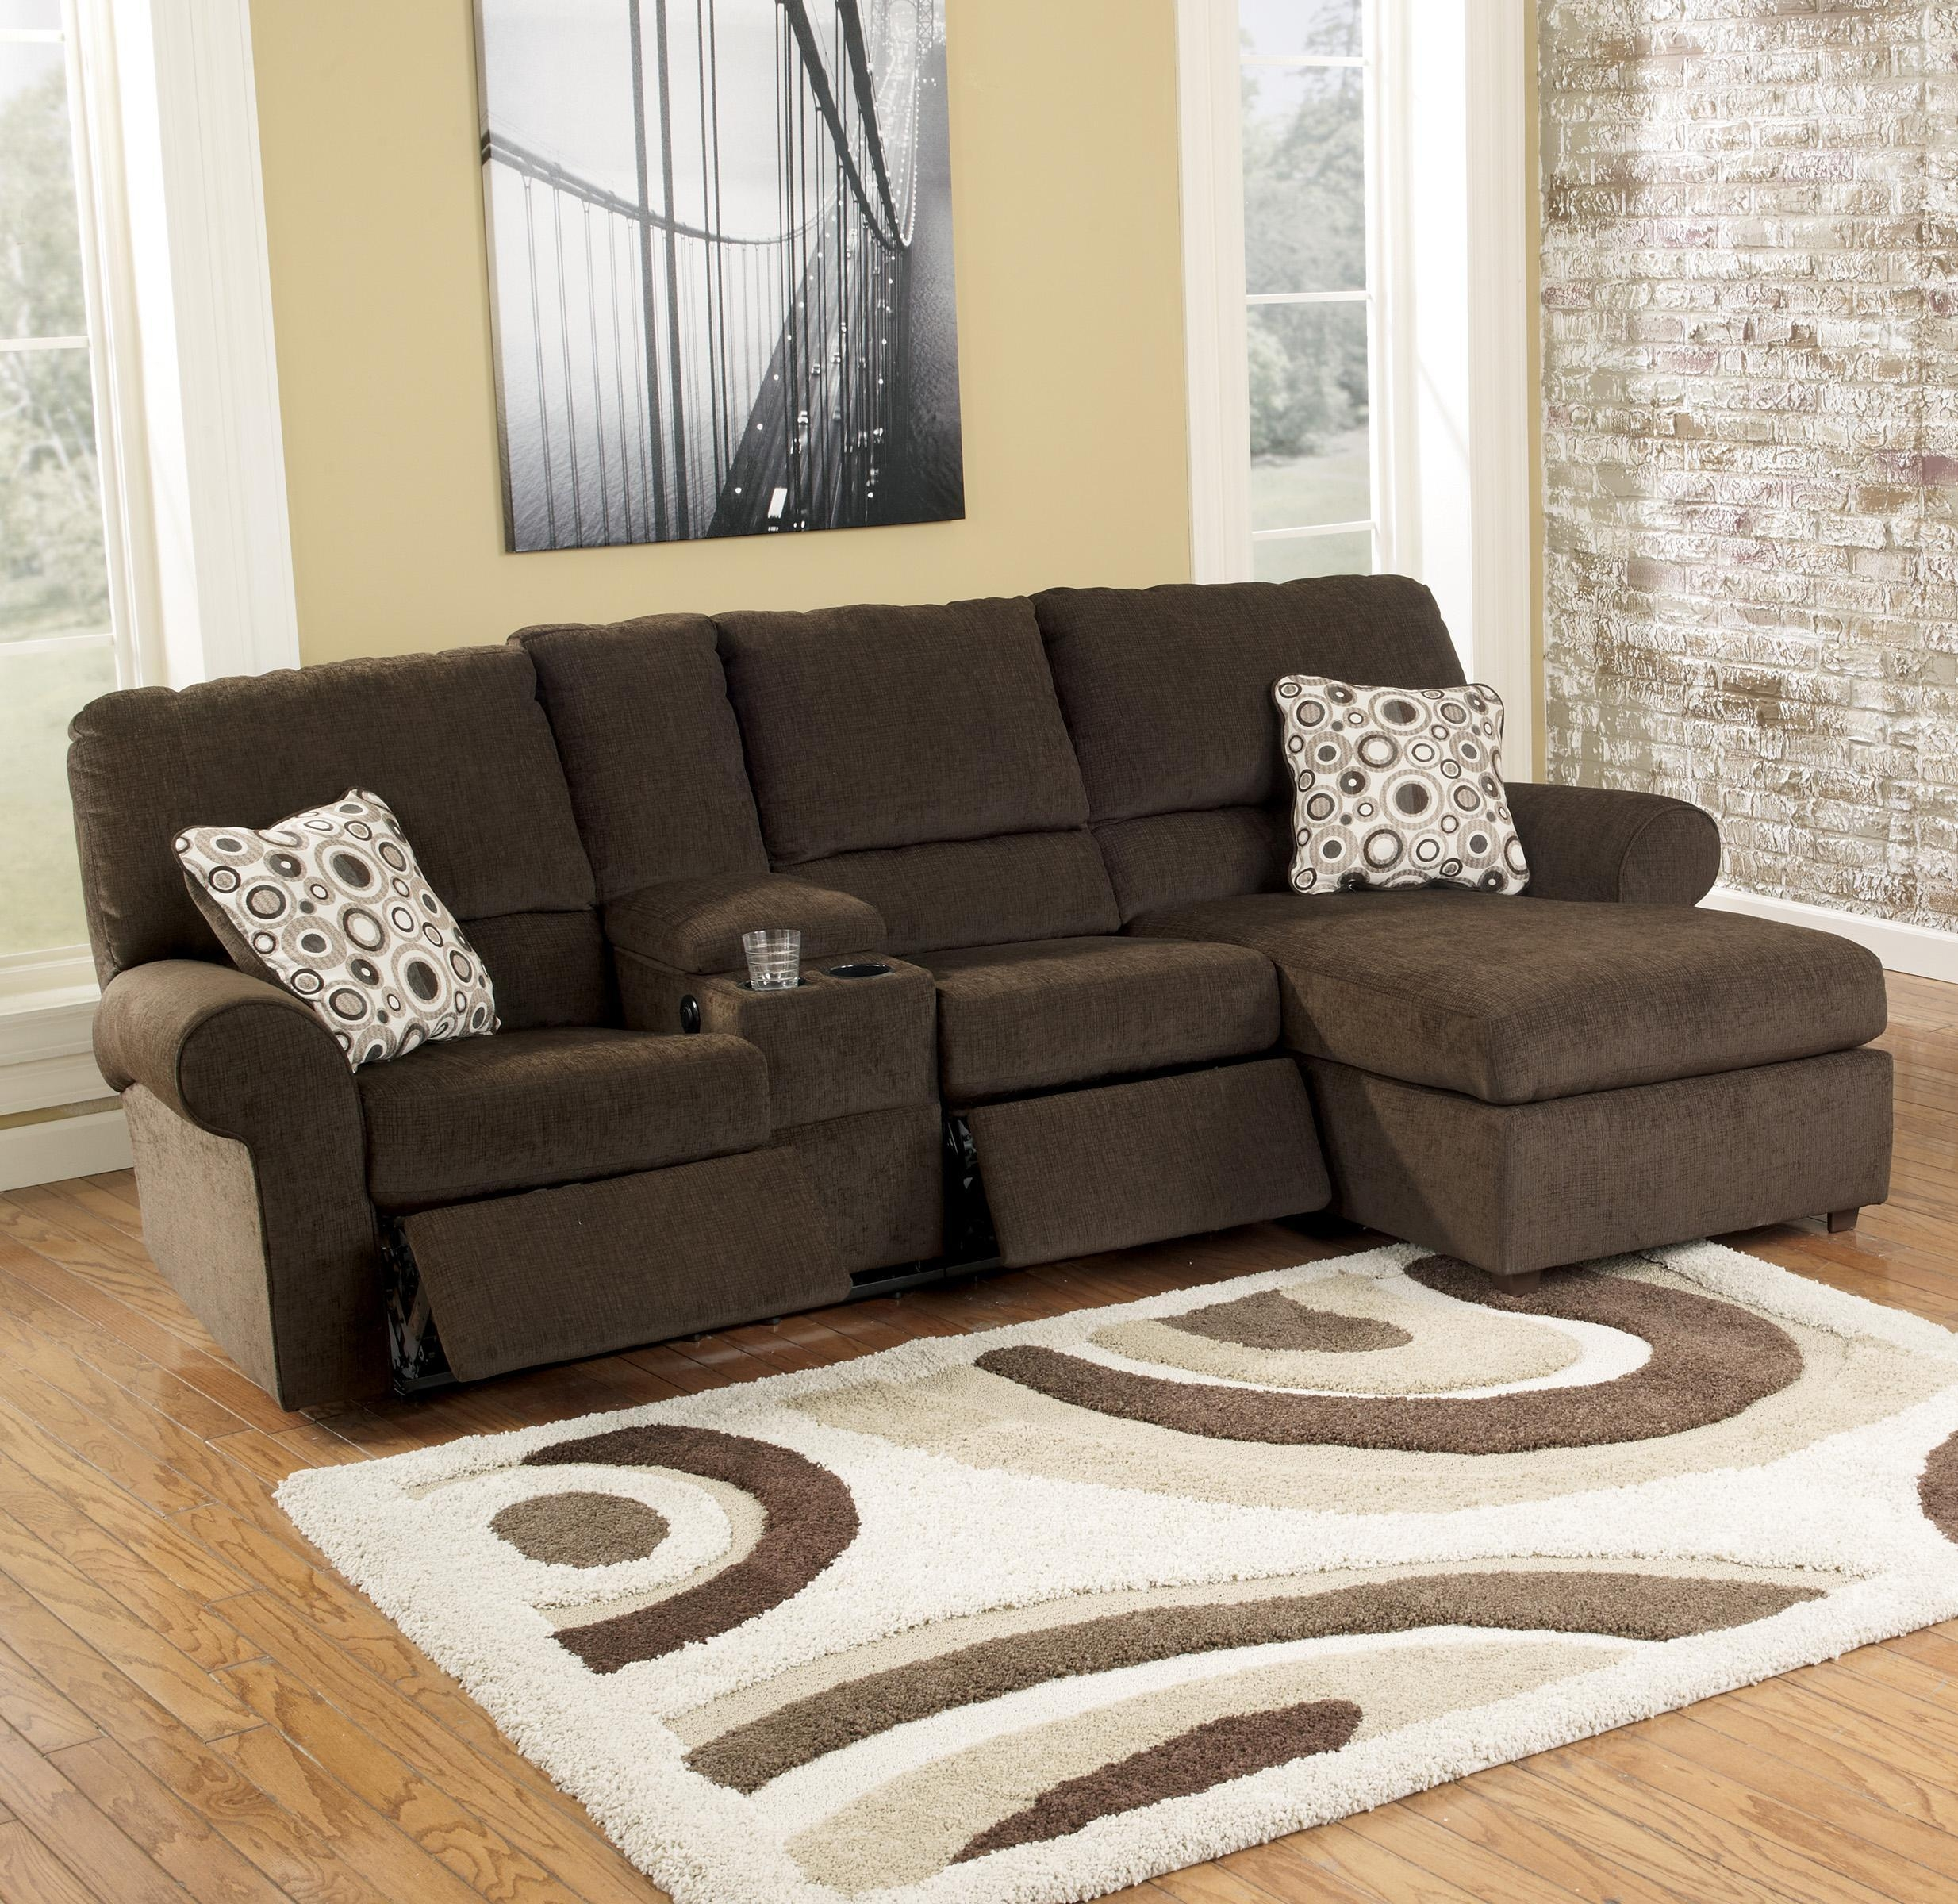 Epic Sectional Sleeper Sofa With Recliners 17 With Additional For Slumberland Couches (Image 3 of 20)